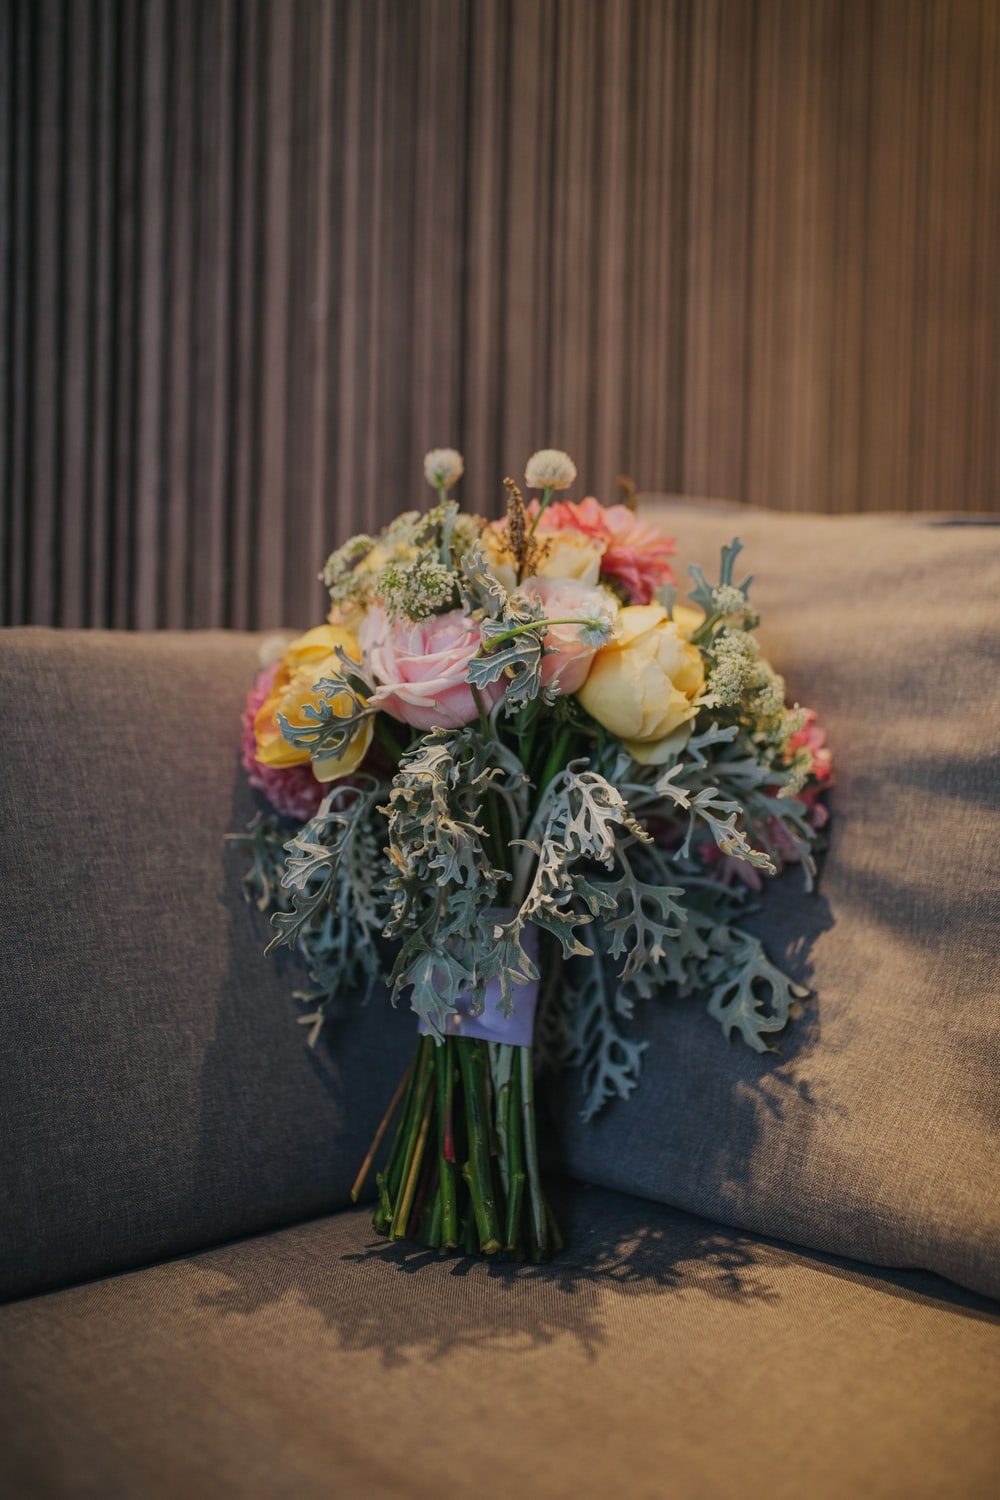 bouquet of rose flowers on gray sofa inside room